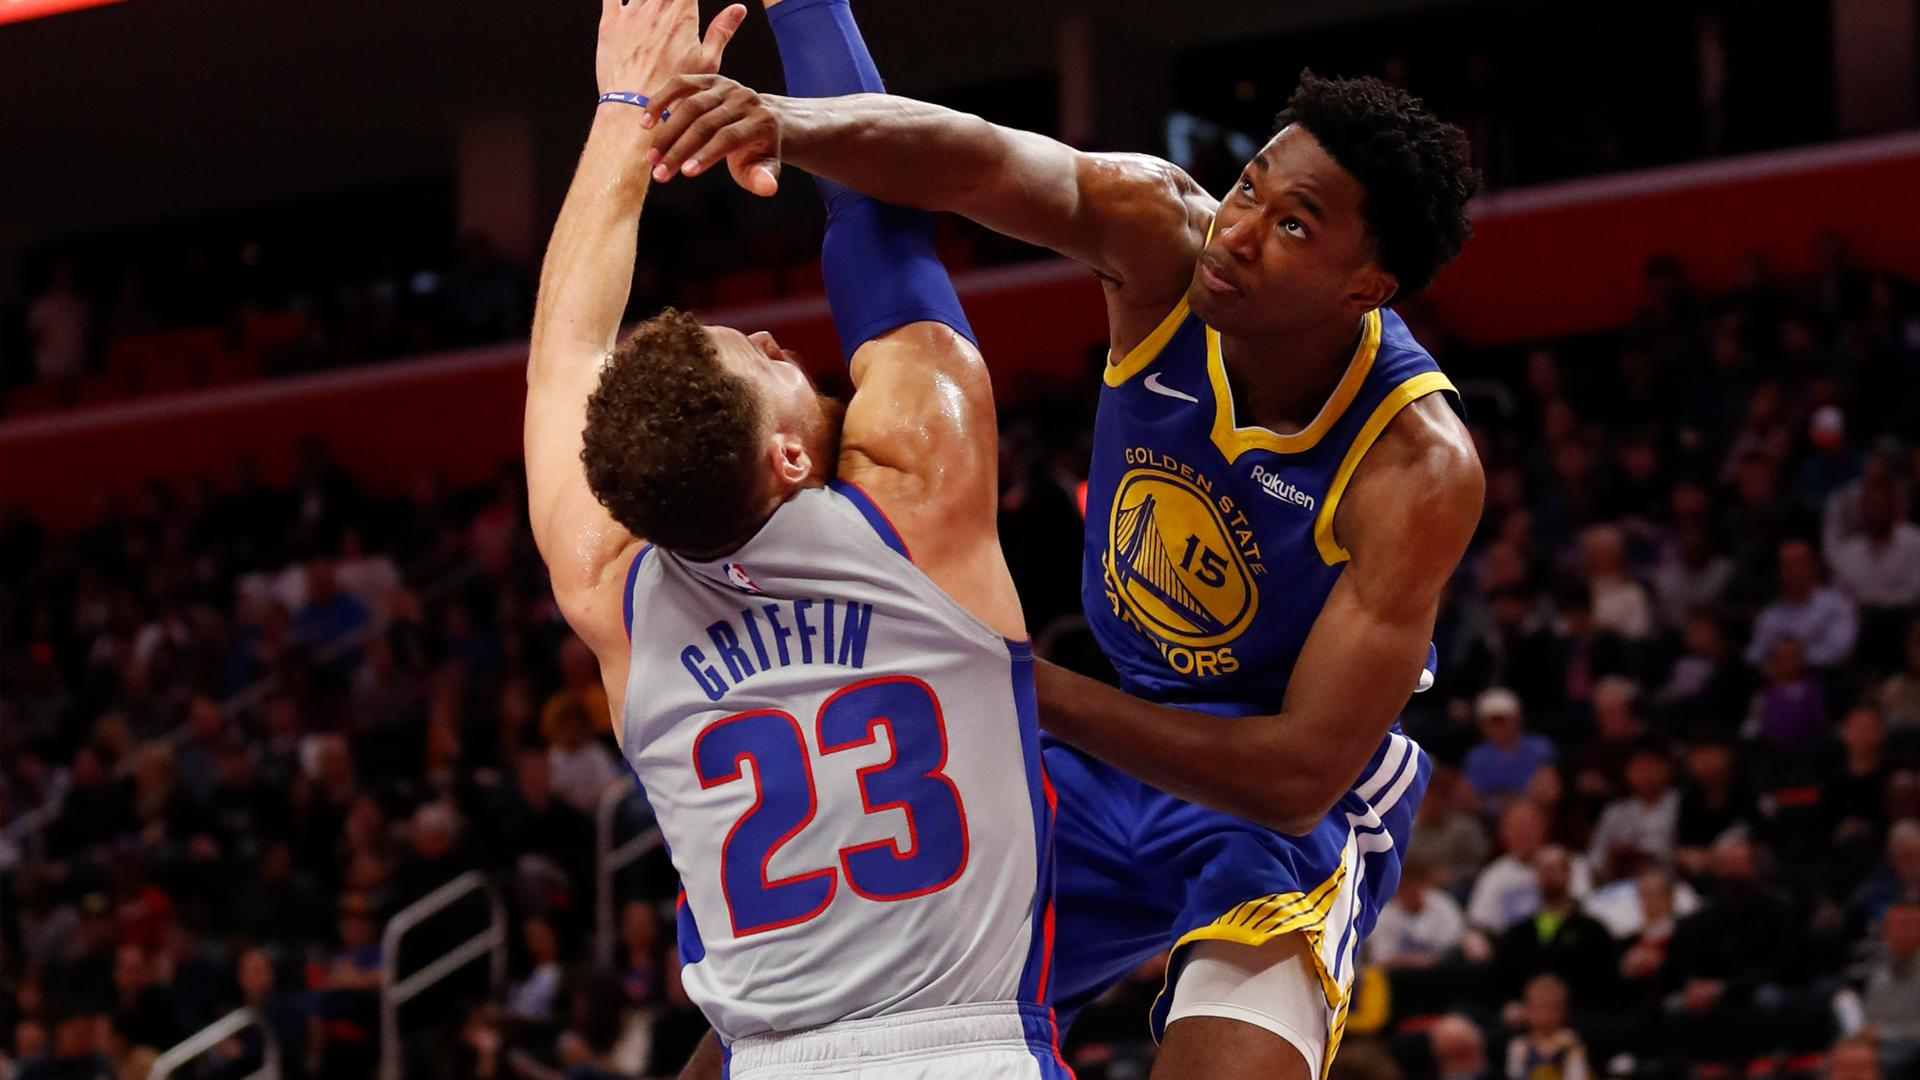 532f63a0e08 Warriors' Damian Jones cleared for contact, will play in 3-on-3 games